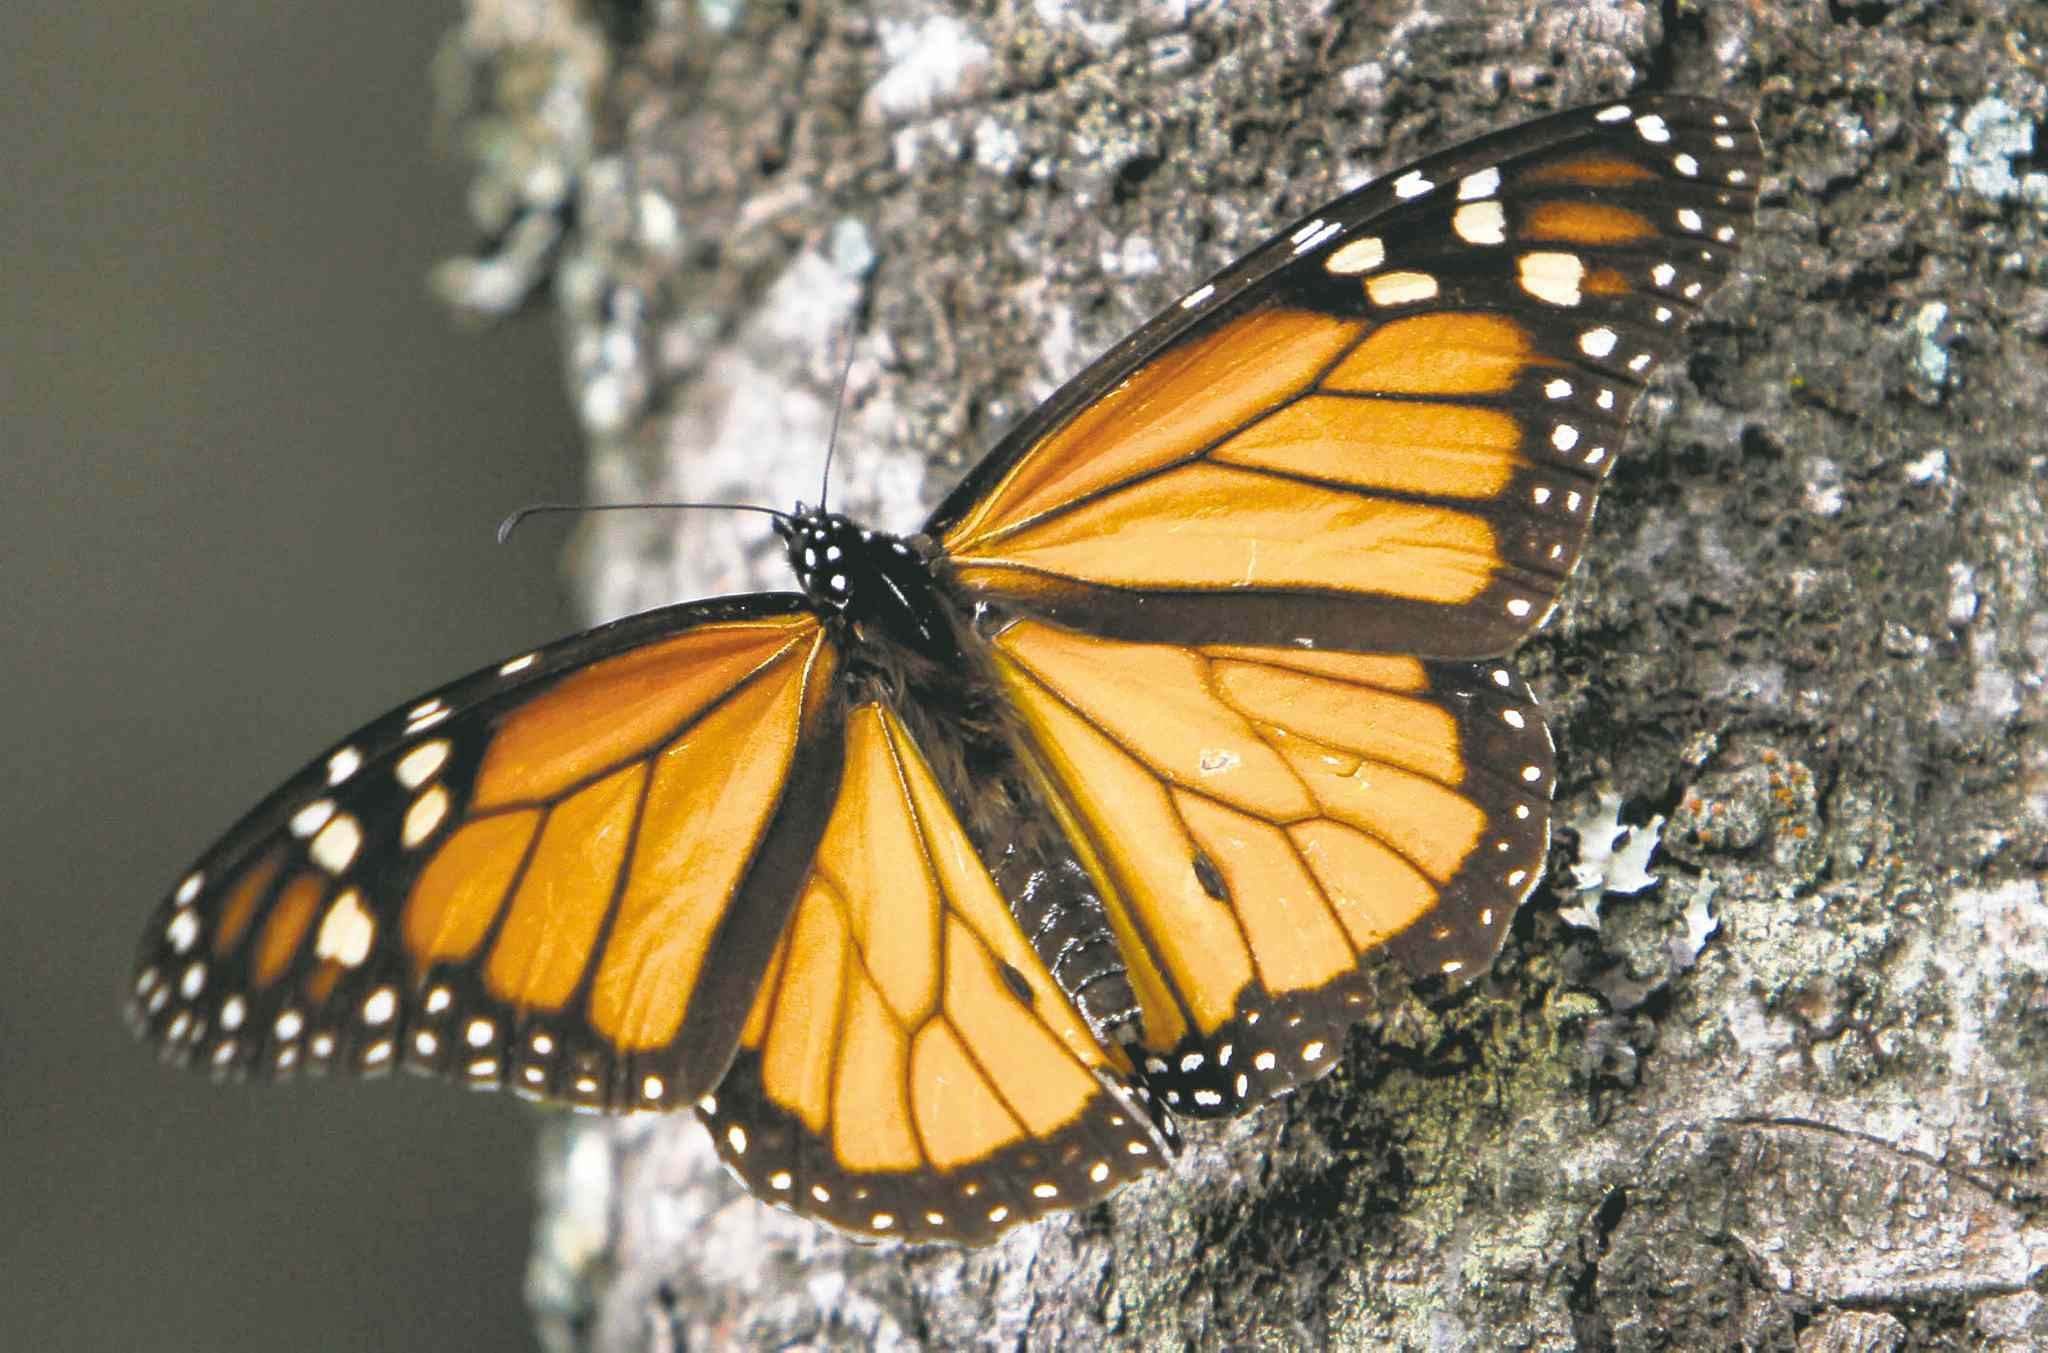 The number of Monarch butterflies wintering in Mexico has plunged. The loss of milkweed due to herbicides almost exactly mirrors the decline in monarch egg production.